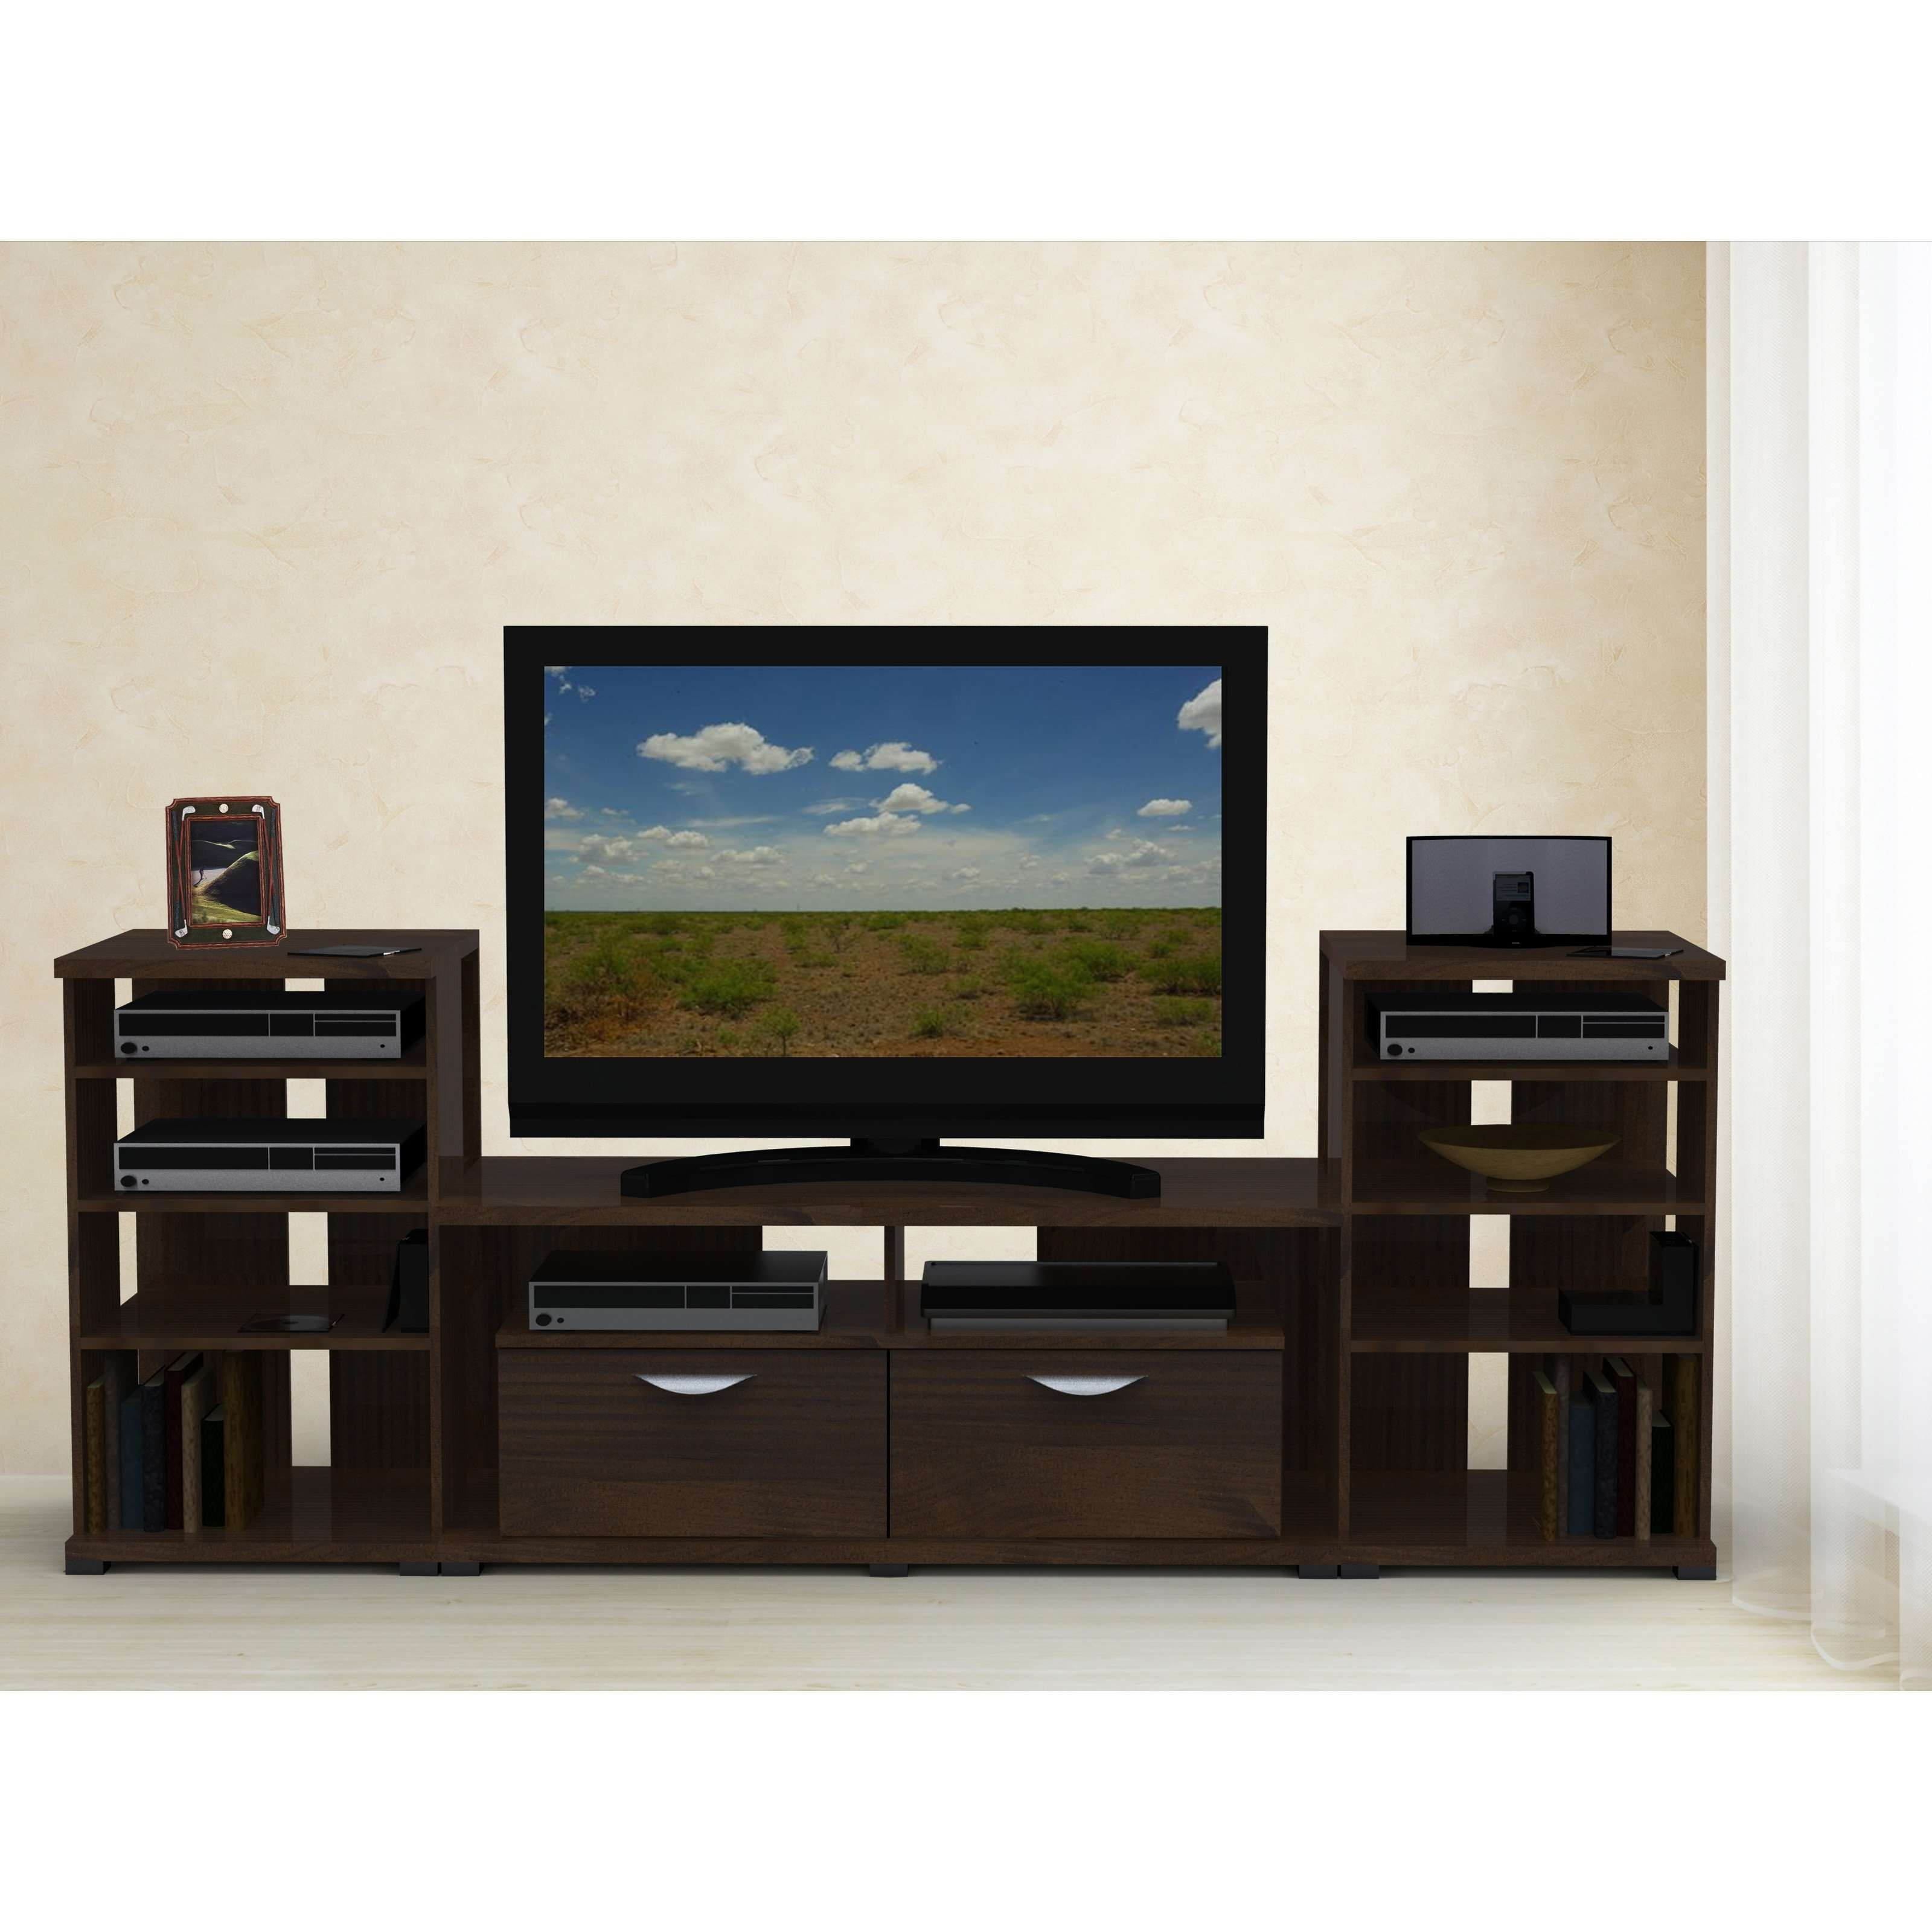 Espresso Lacquer Solid Wood Tv Stand And Media Entertainment Pertaining To Solid Wood Black Tv Stands (View 13 of 15)